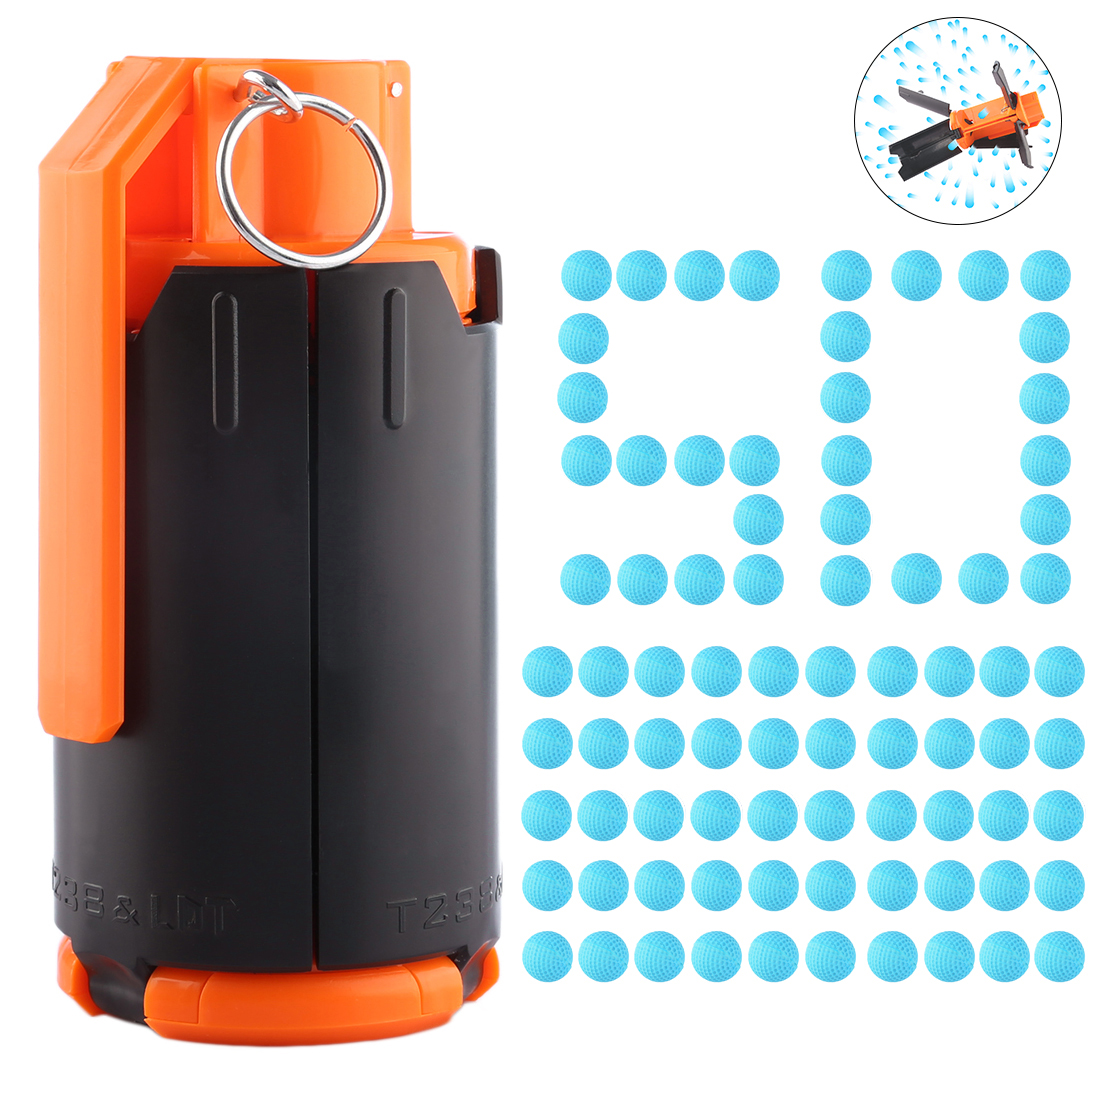 Hot Tactical Plastic Modified Crystal Water Beads Bullet Bomb with 50pcs Round Soft Bullet Foam Bullets for nerf Rival series